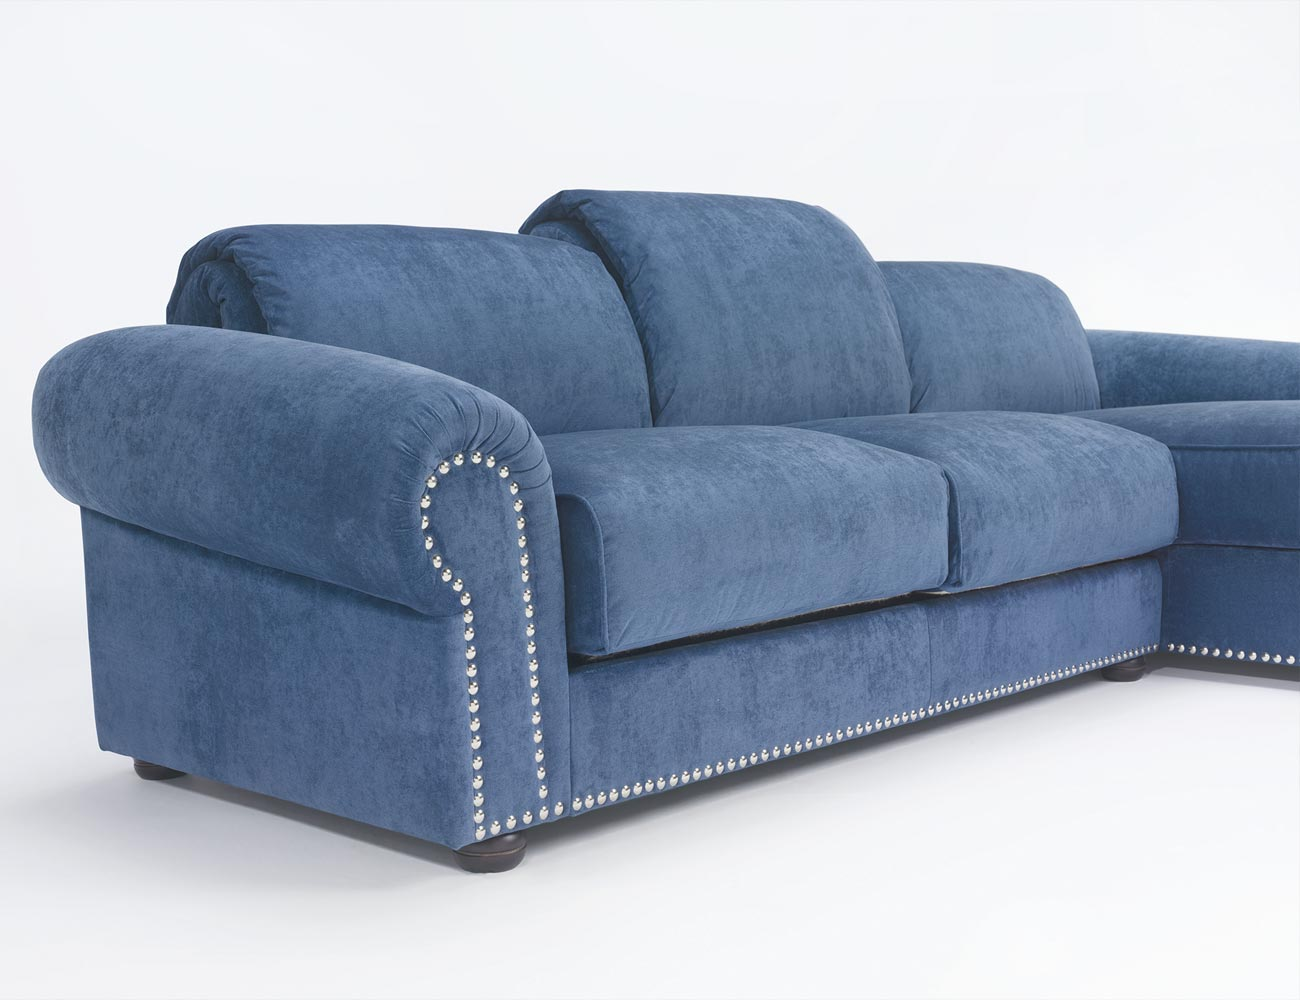 Sofa chaiselongue gran lujo decorativo azul 135